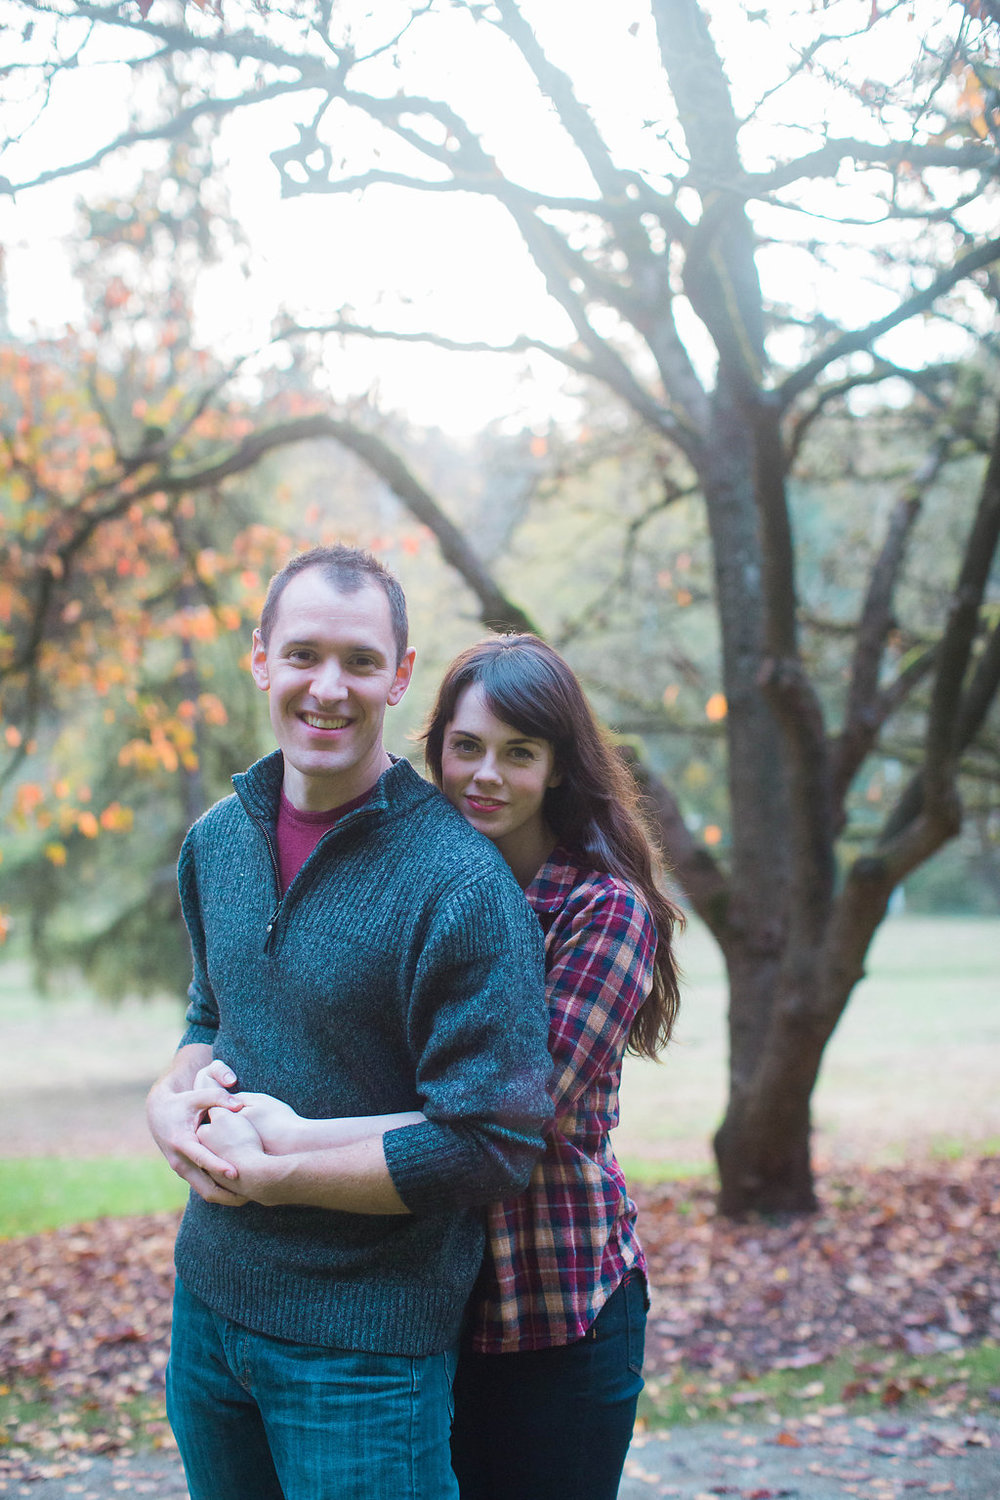 Tessa+Aaron_Engagement_Seattle_Arboretum_Adina+Preston+Weddings25.jpg